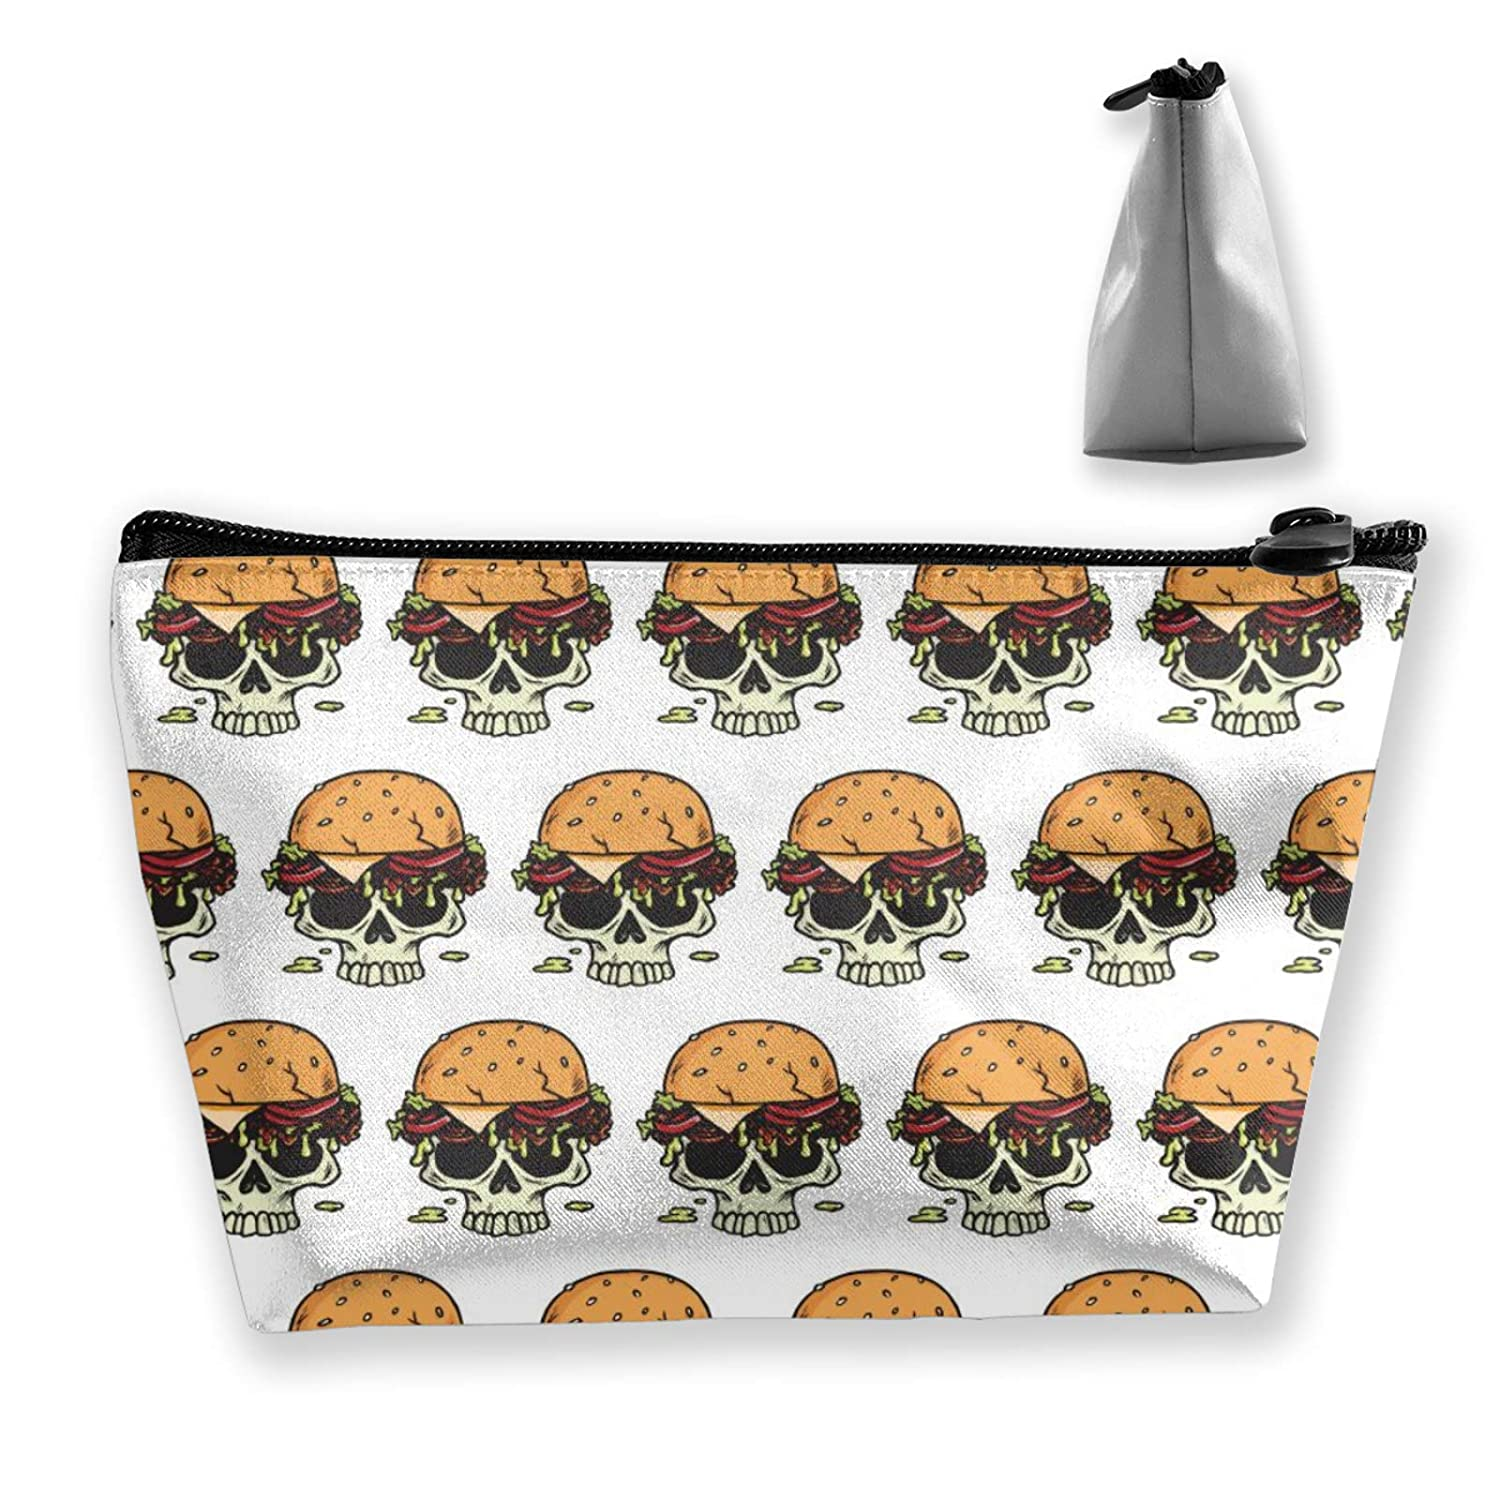 Skeleton Skull Head With Hamburger Hat Storage Bag Holder Portable Gift For Girls Women Large Capacity Cosmetic Train Case For Cosmetics Jewelry Premium Travel Bag